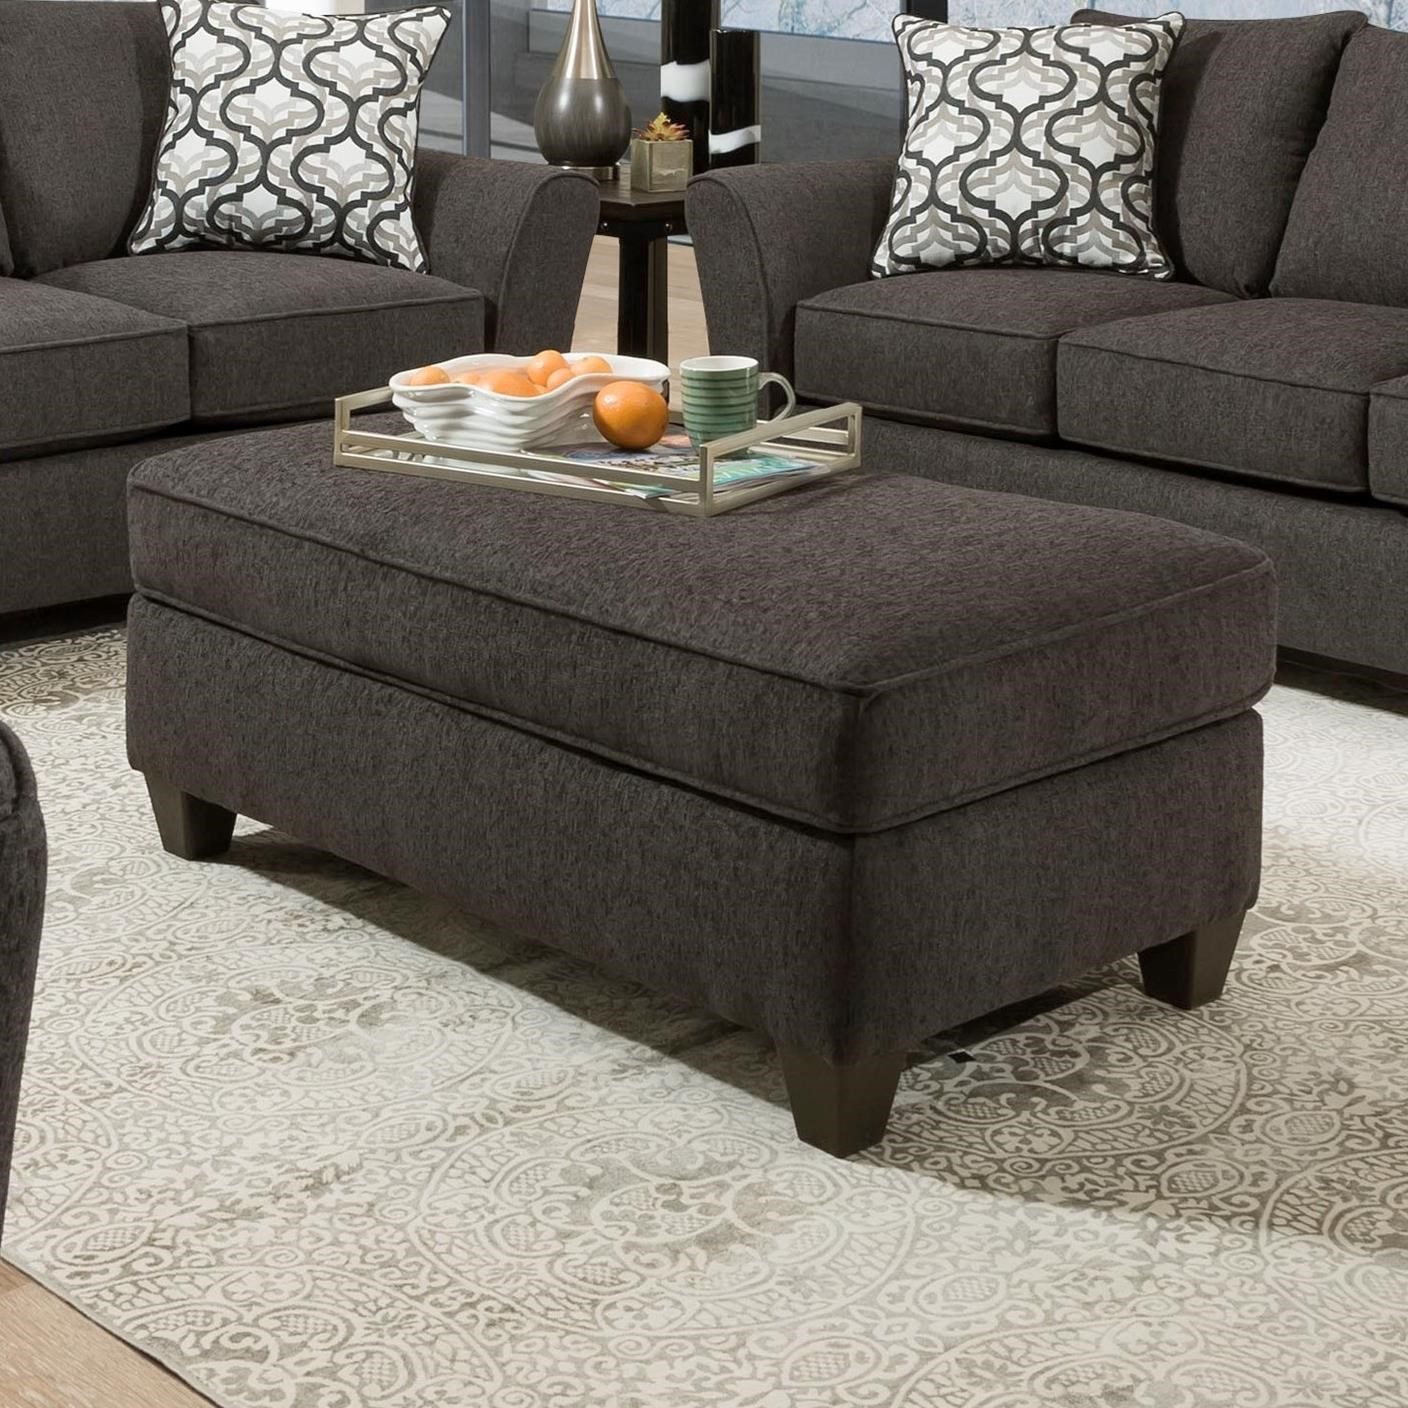 4550 Storage Ottoman by Peak Living at Prime Brothers Furniture